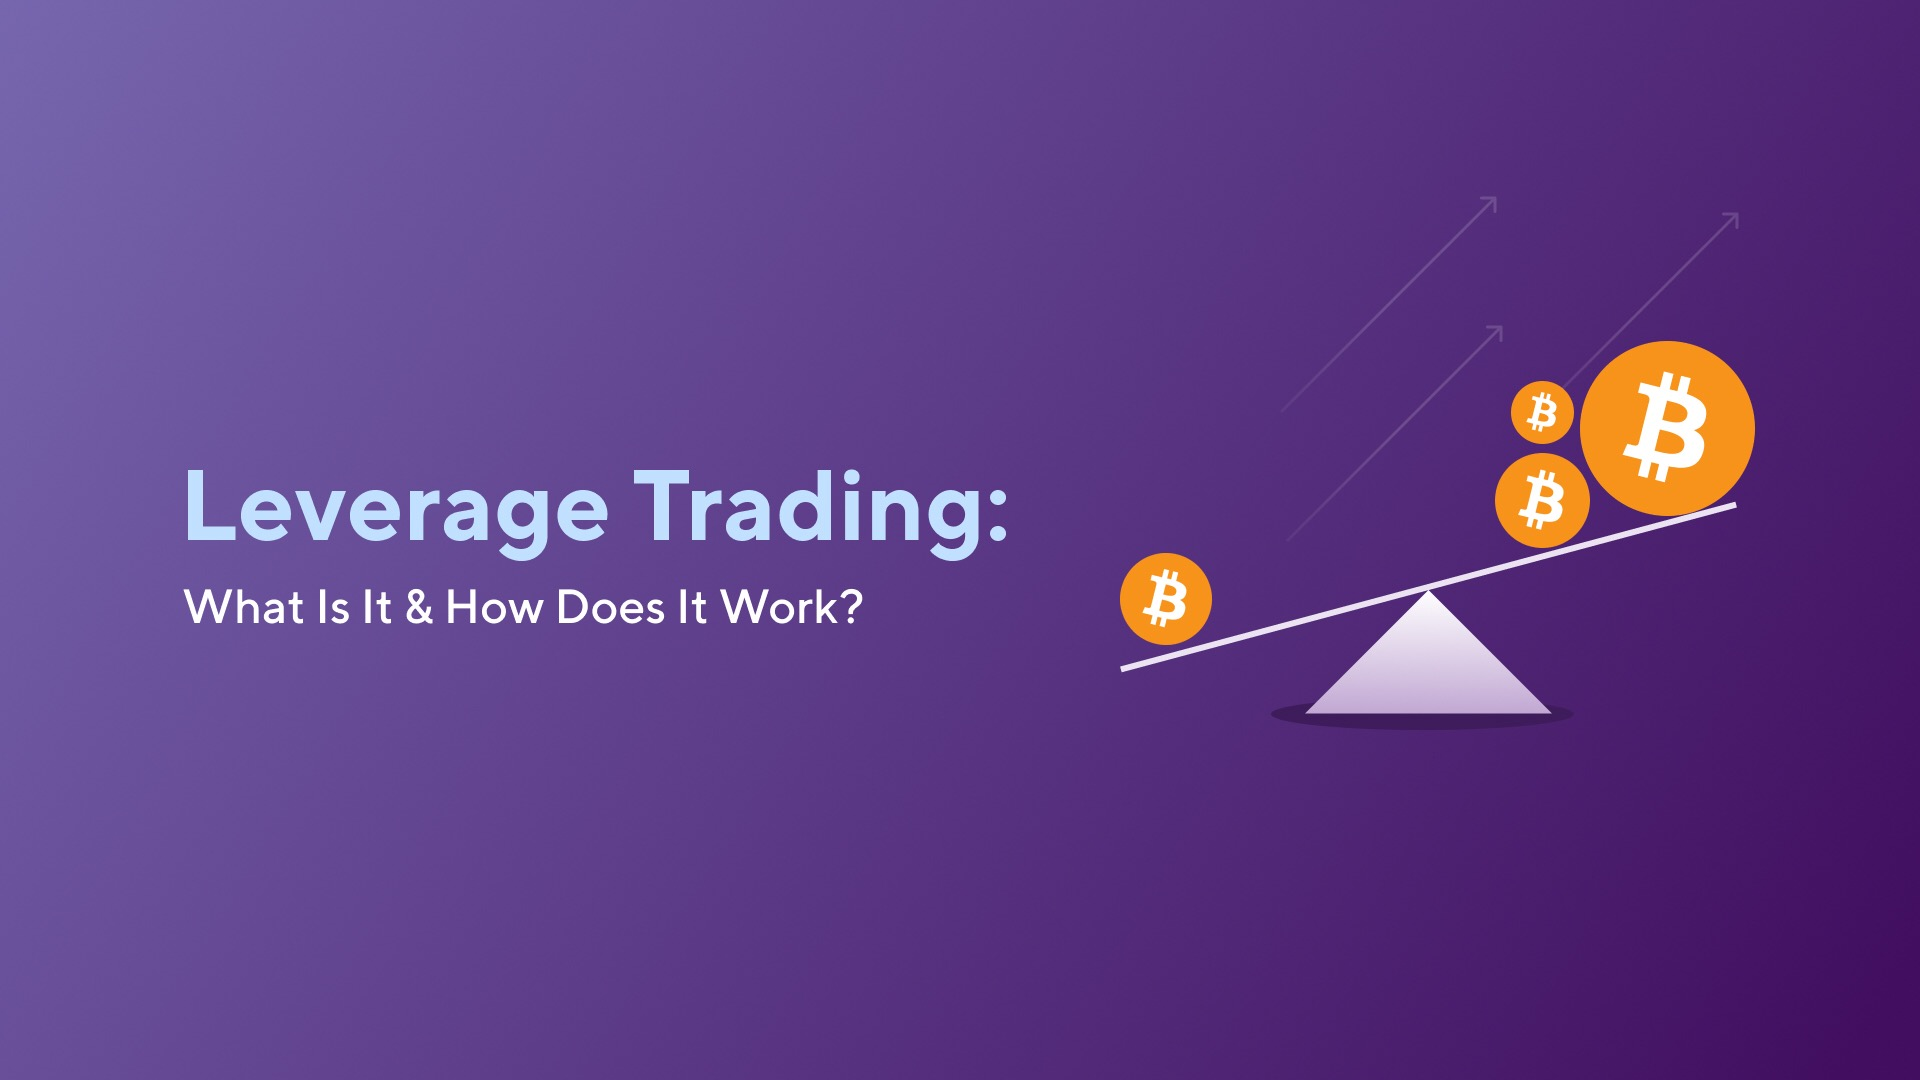 Leverage Trading: What Is It & How Does It Work?